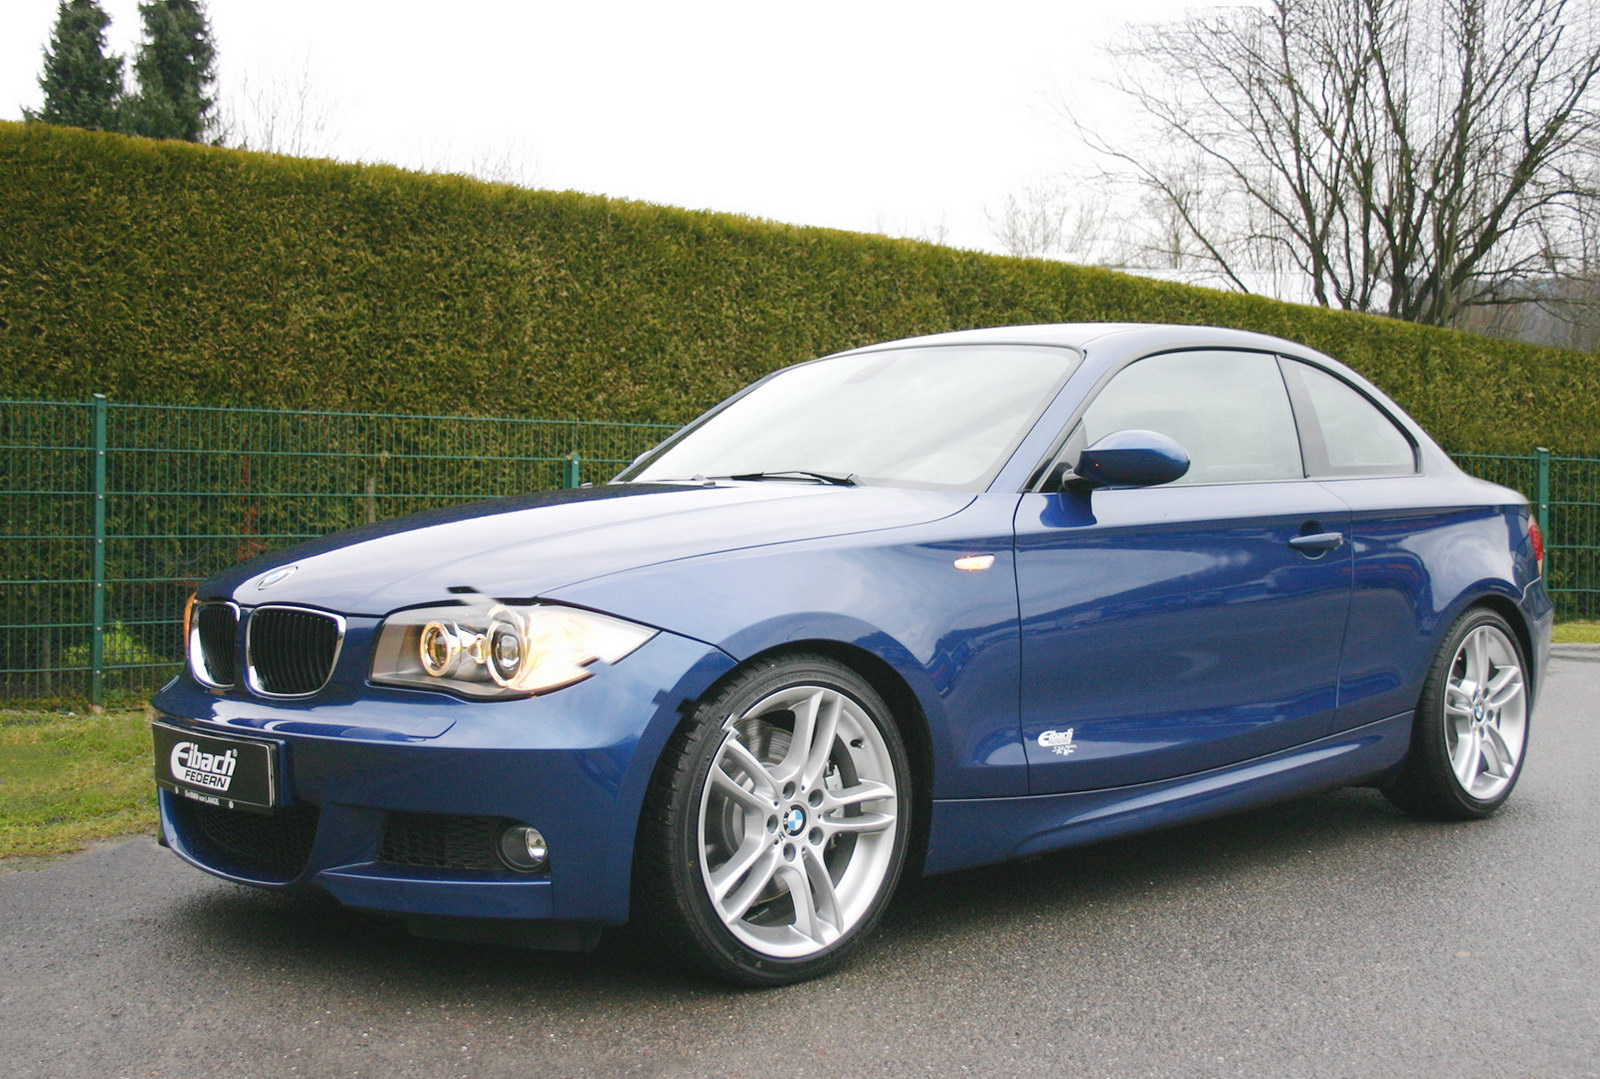 Eibach BMW 1 Series Coupe Wallpaper For Iphone